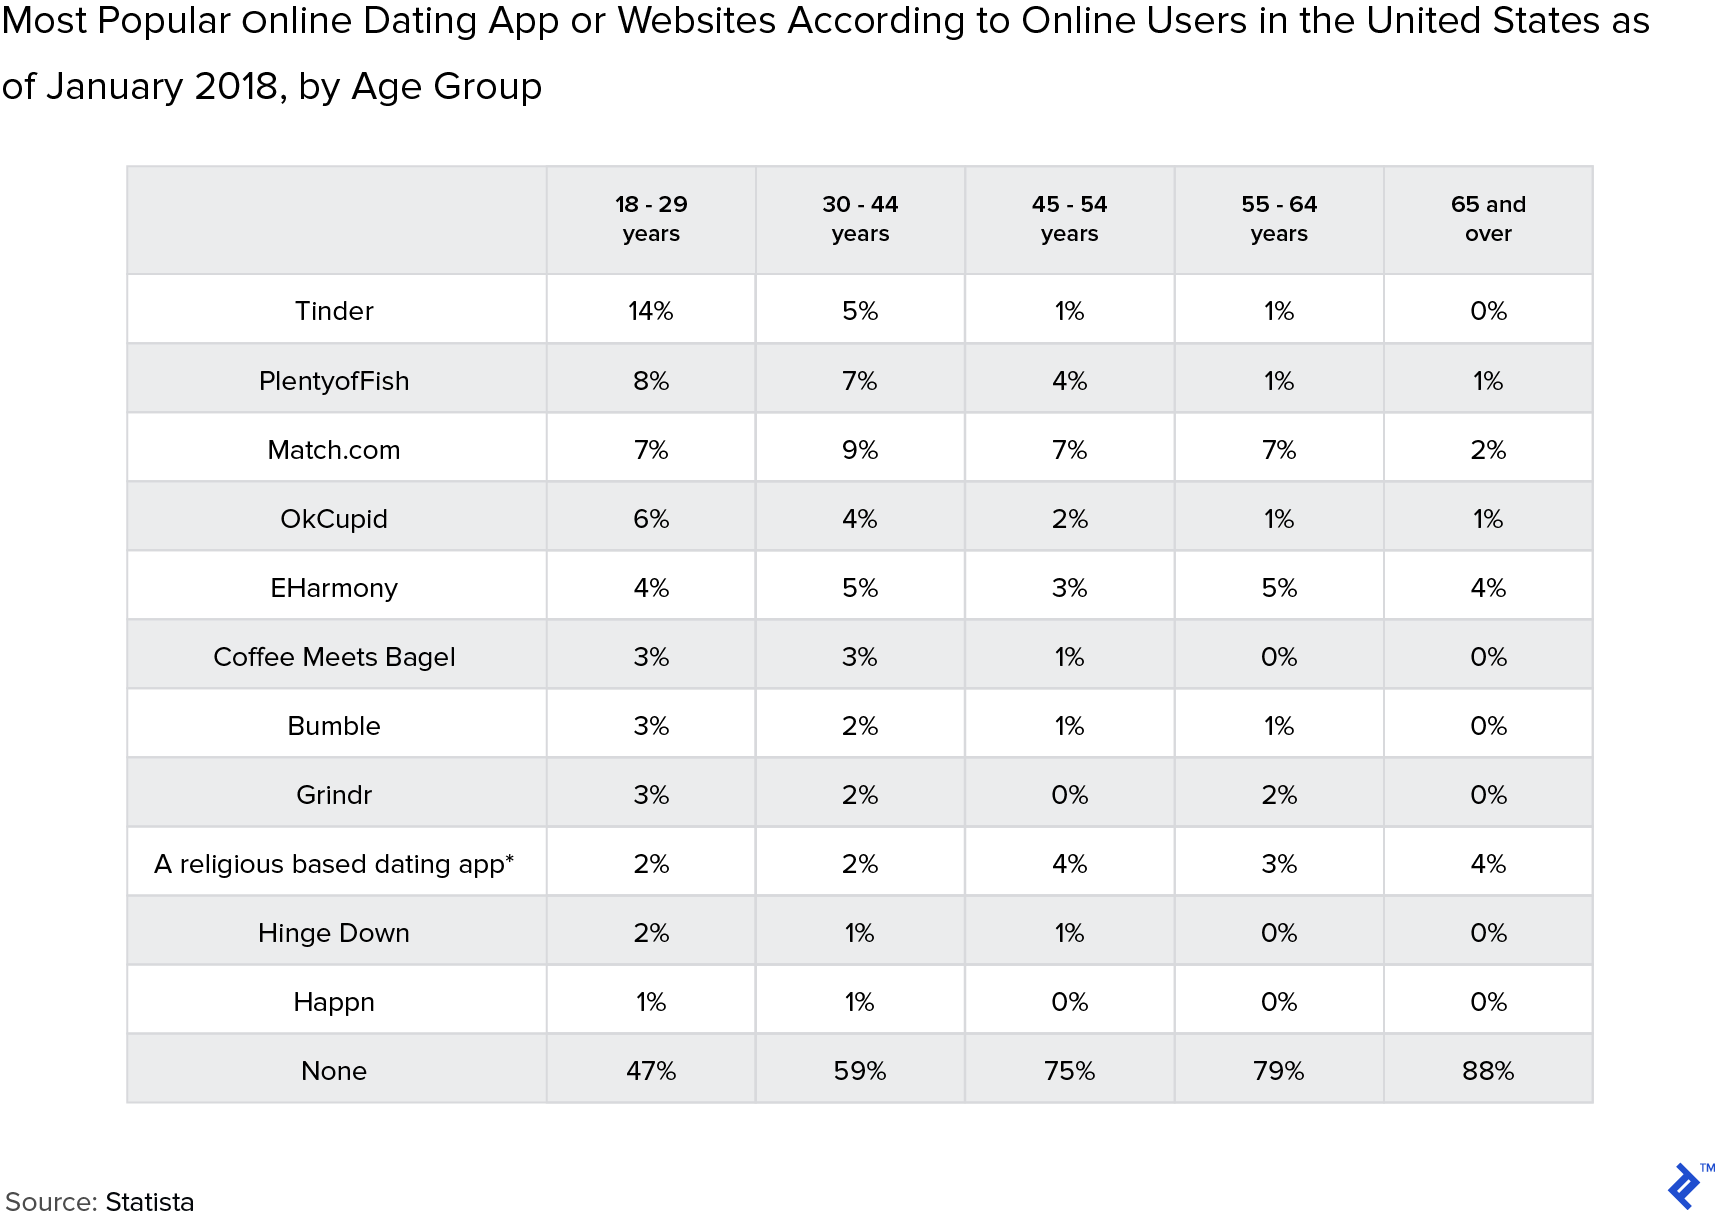 Chart: Most Popular Online Dating App or Websites According to Online Users in the United States as of January 2018